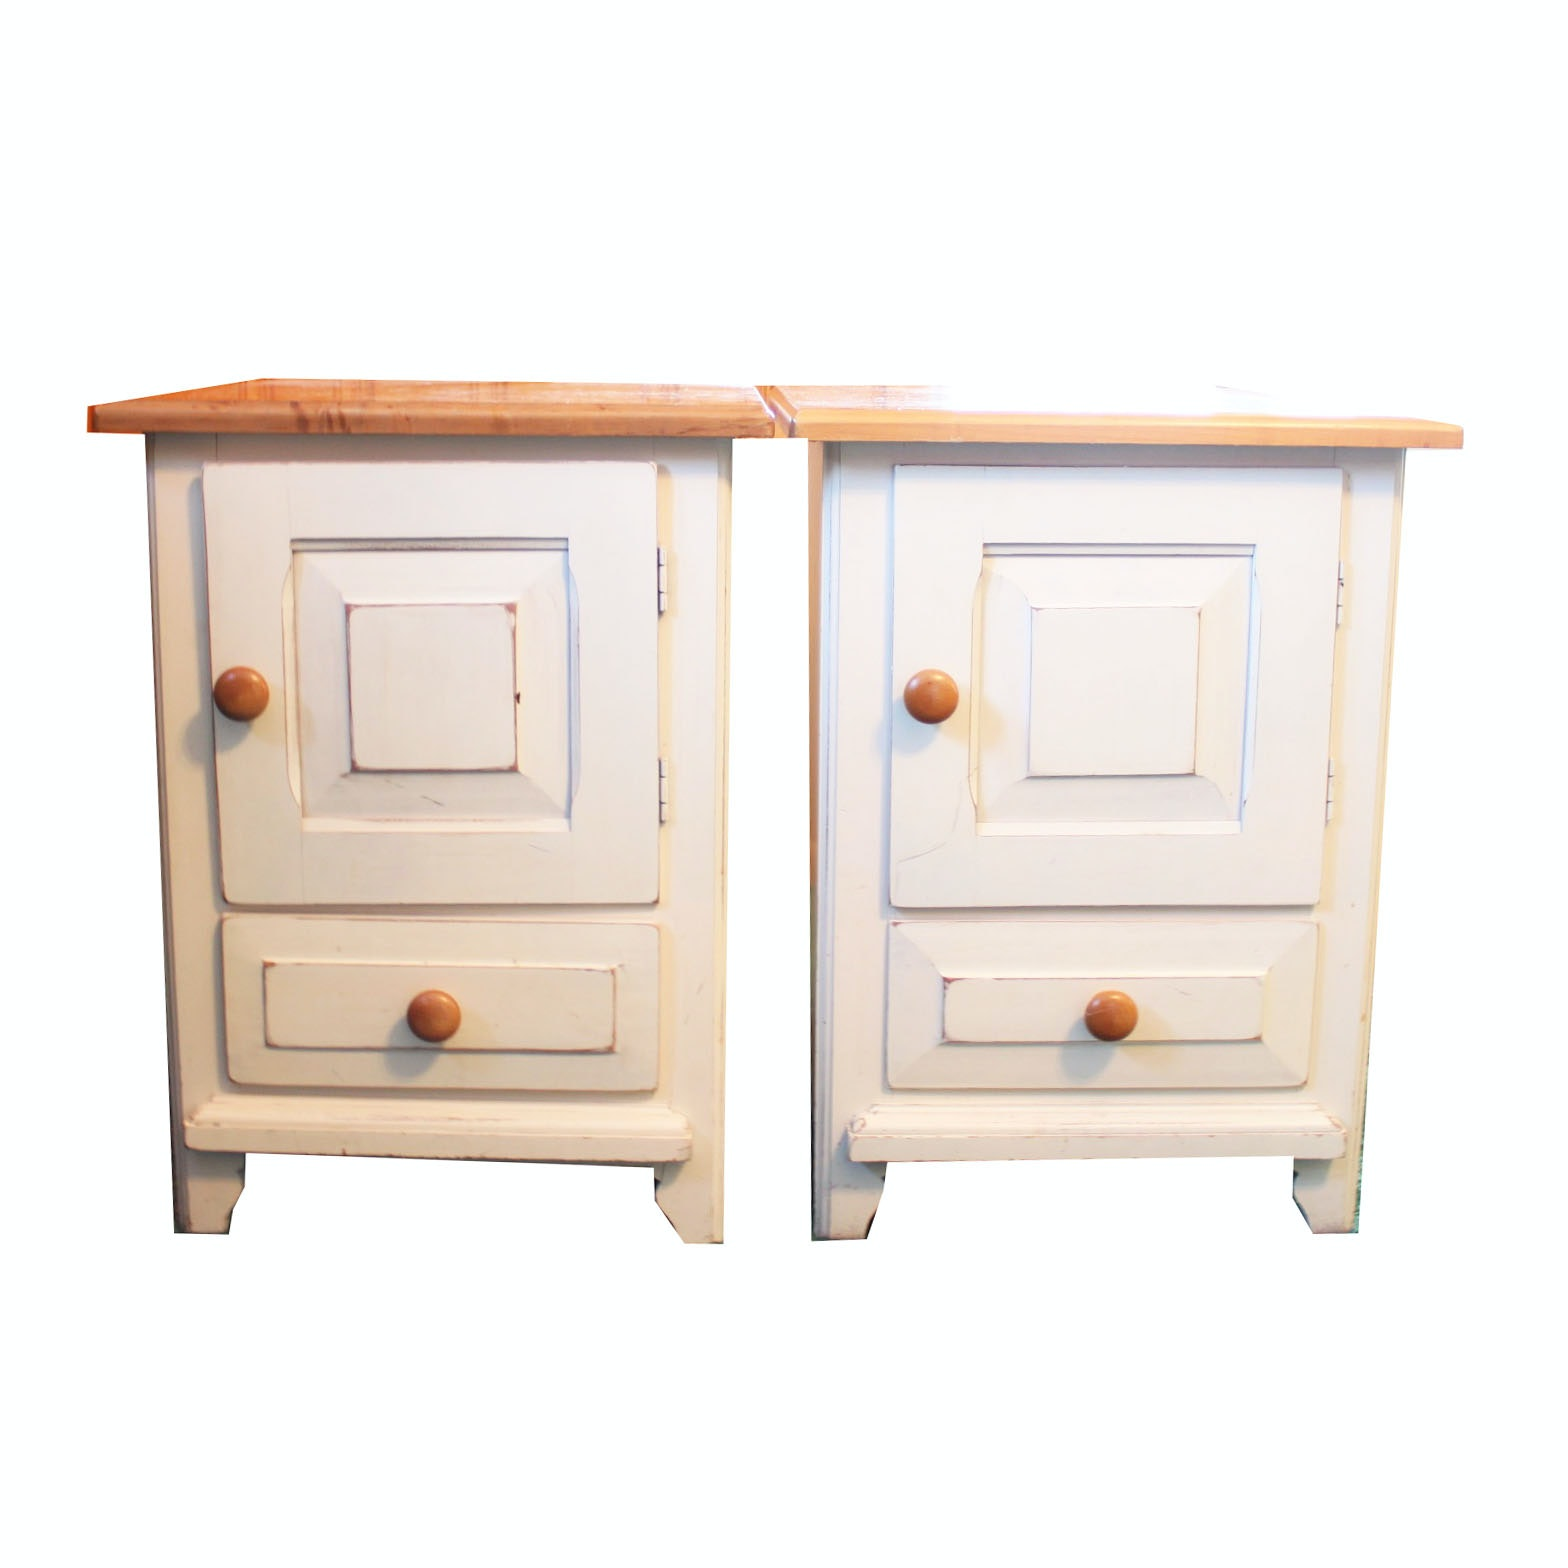 Pair of Painted Pine End Tables from Riverside